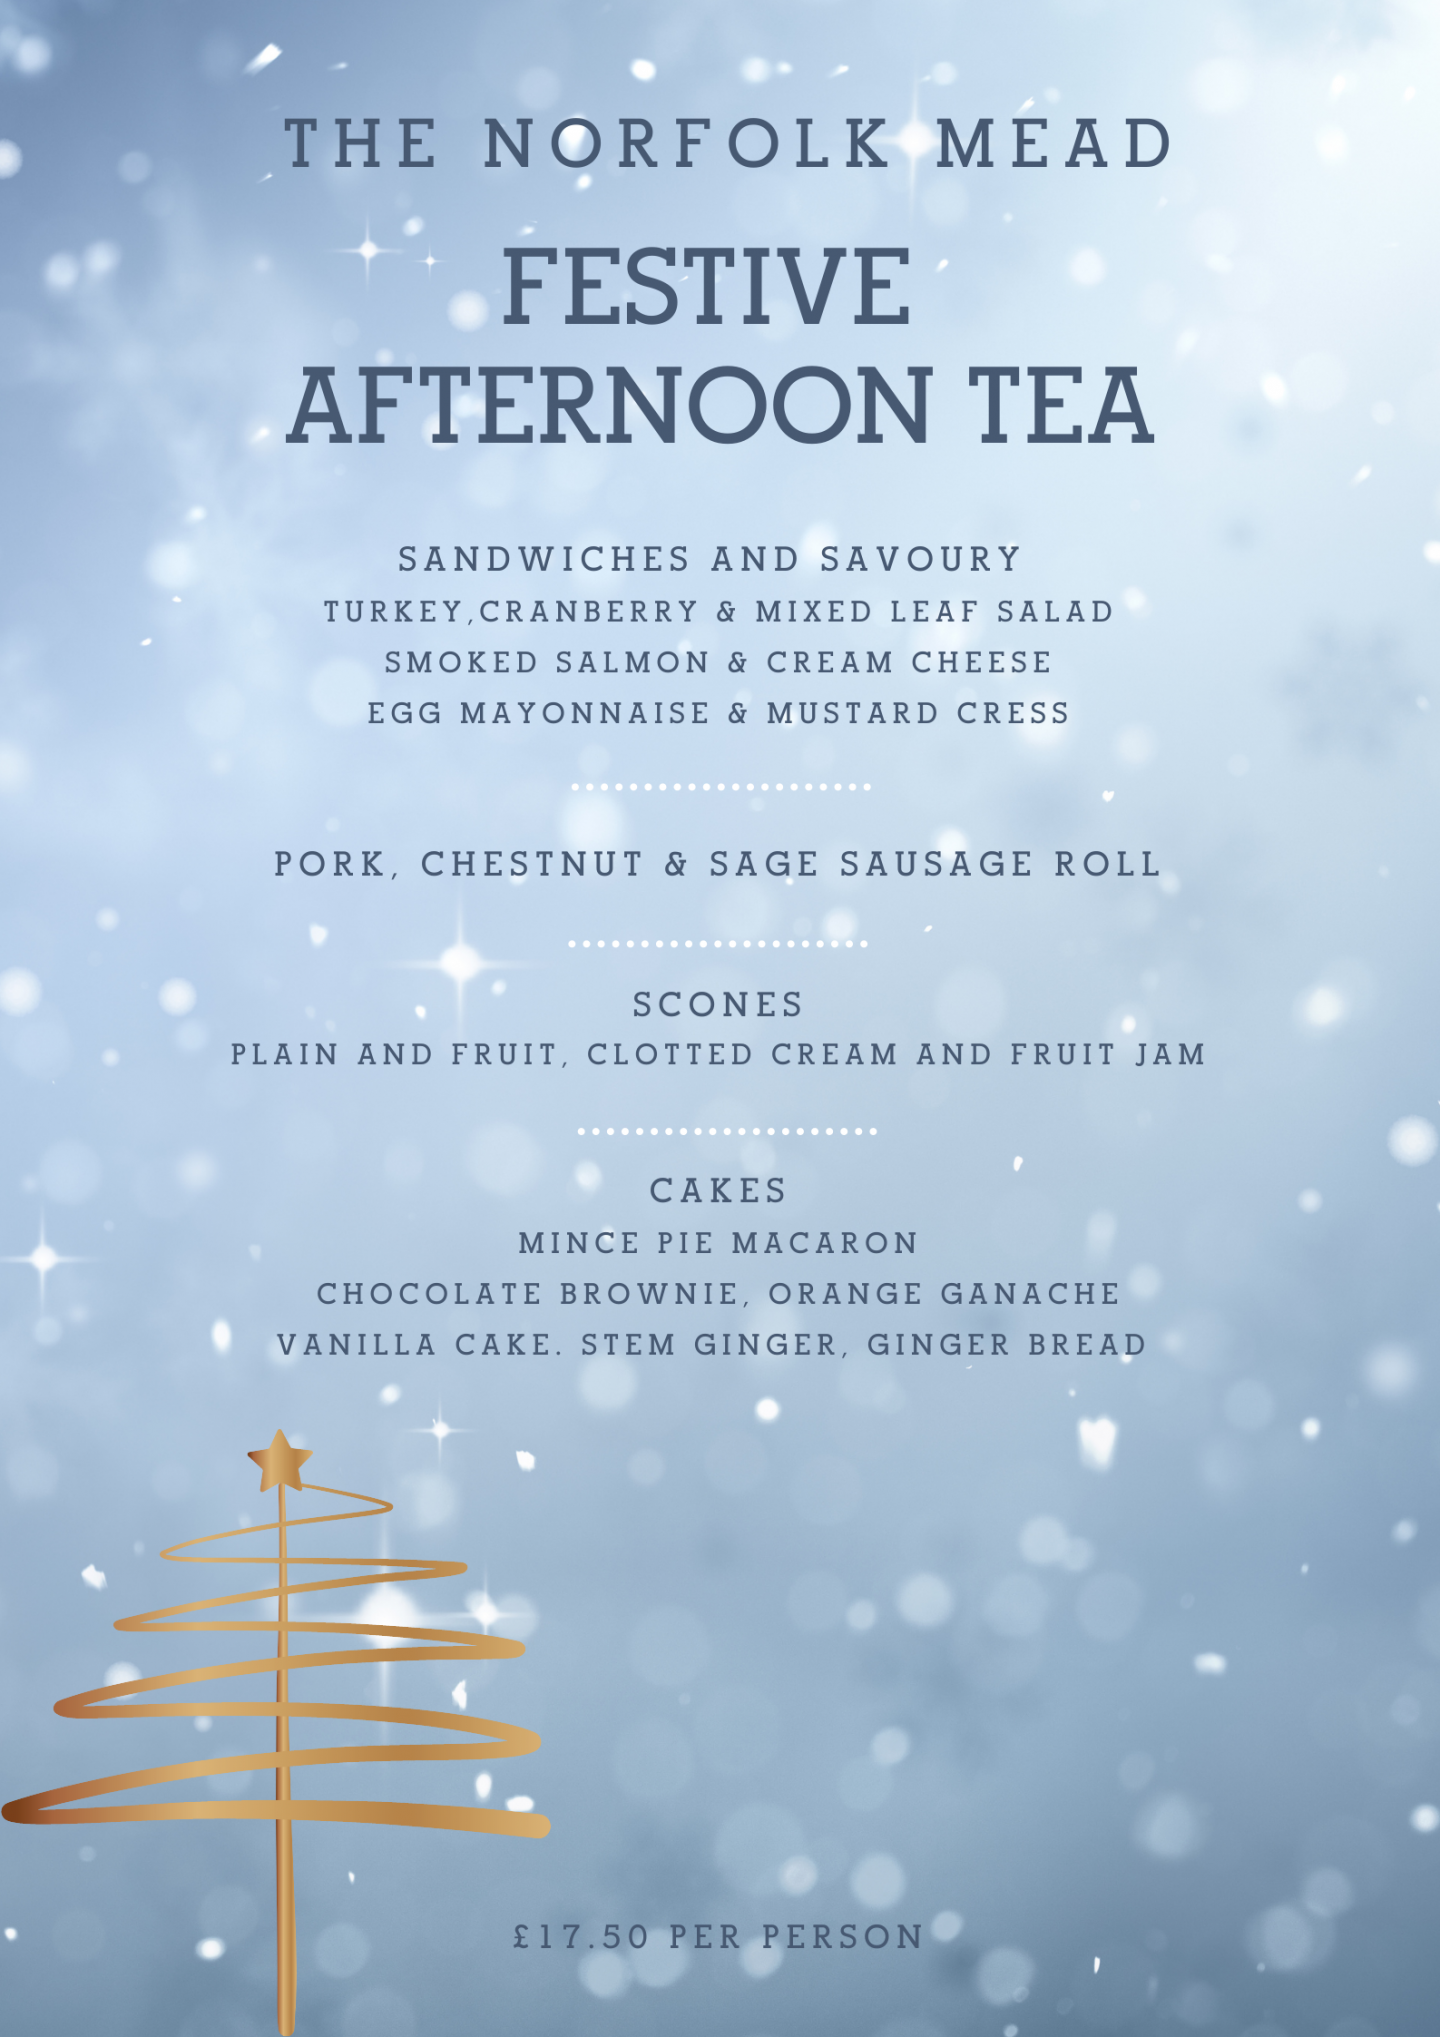 Festive Afternoon Tea Menu at The Norfolk Mead